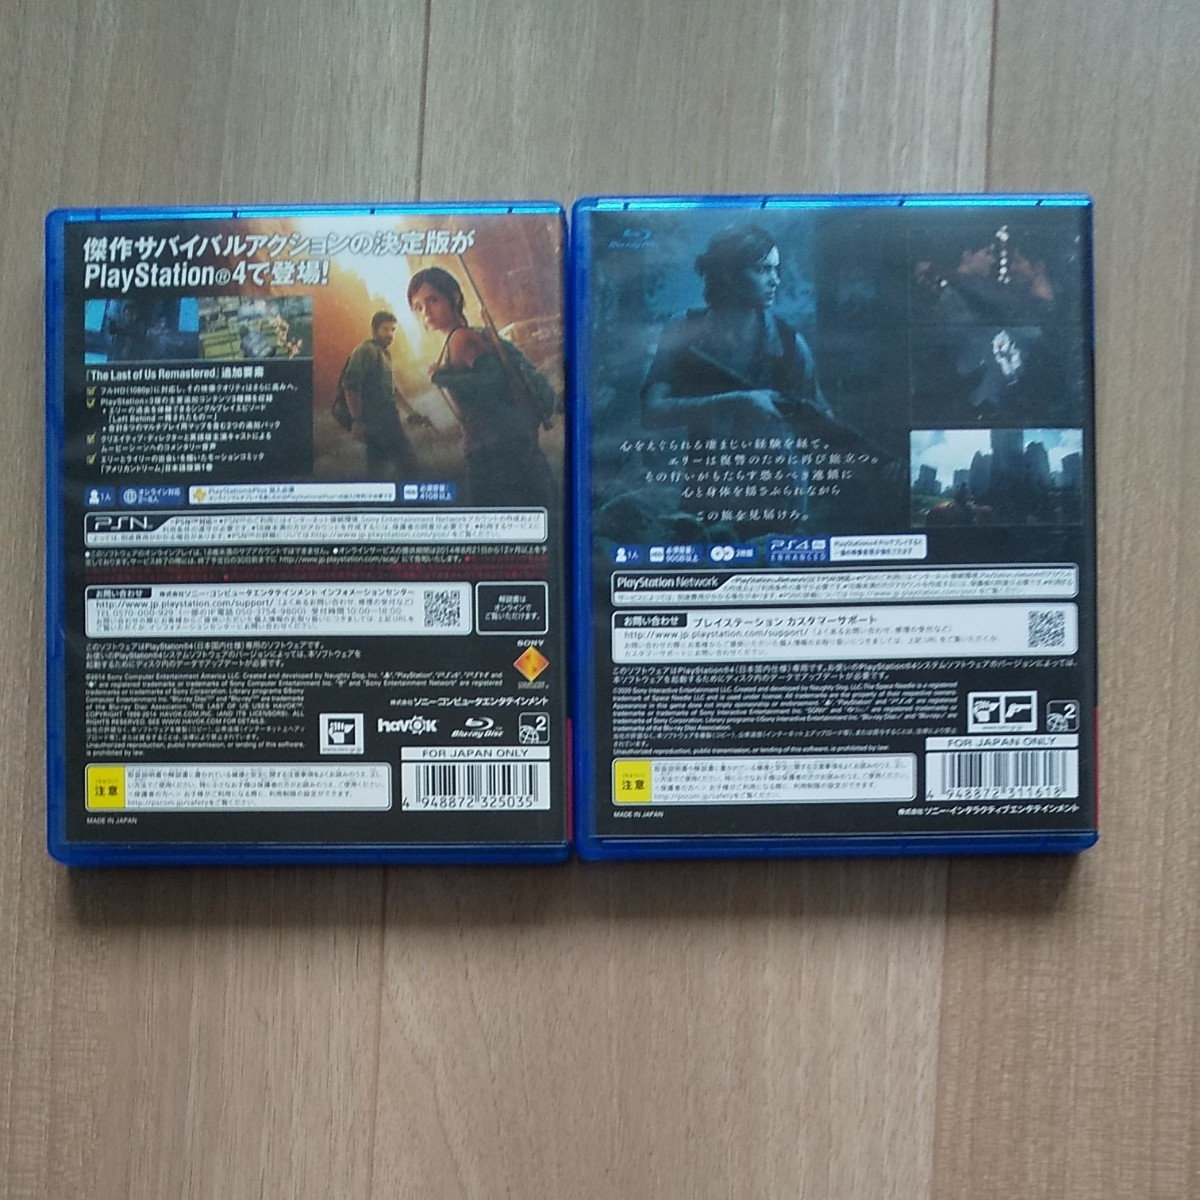 PS4 pro本体 CUH-7200BB01 The last of us2本セット